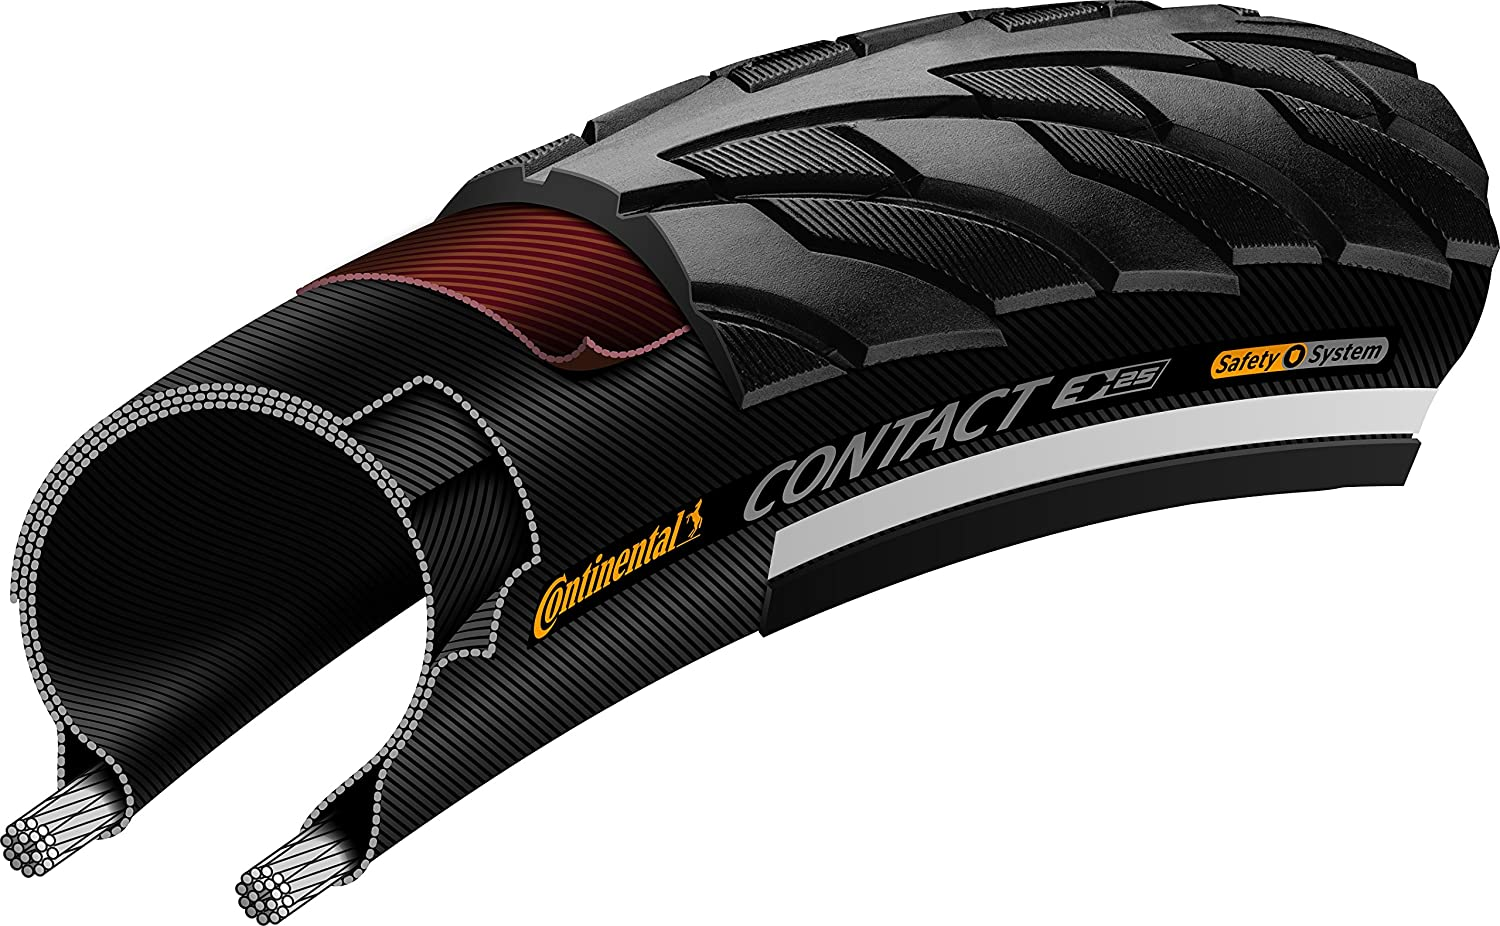 Continental Contact ETRTO BW Bike Tires, Black, 700X28 (28-622) 0101316